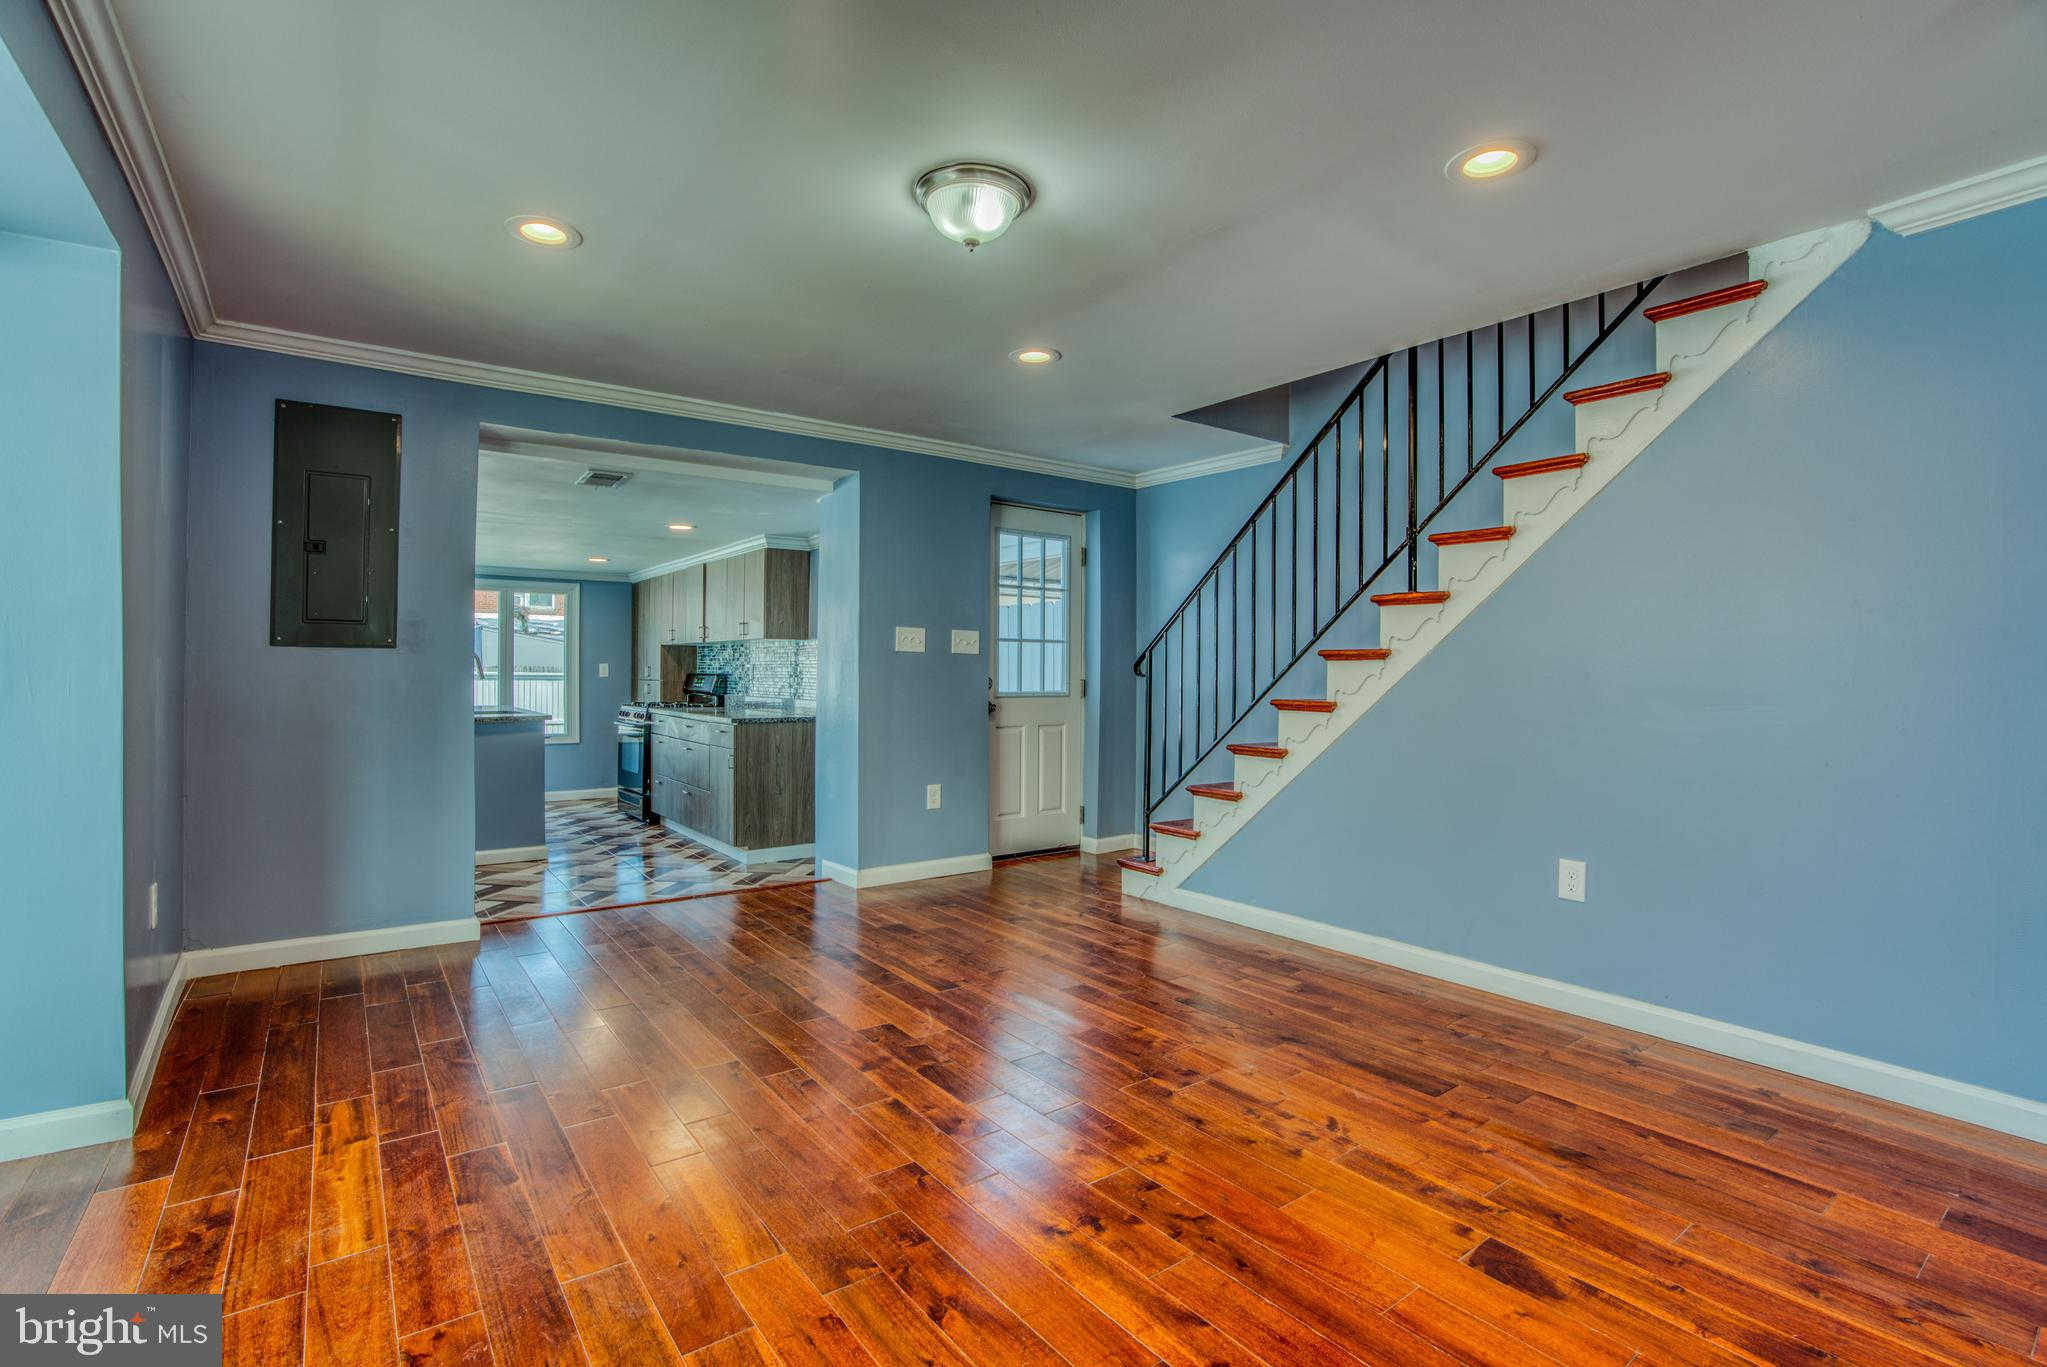 7855 St Claire Lane, Baltimore, MD 21222 now has a new price of $172,999!